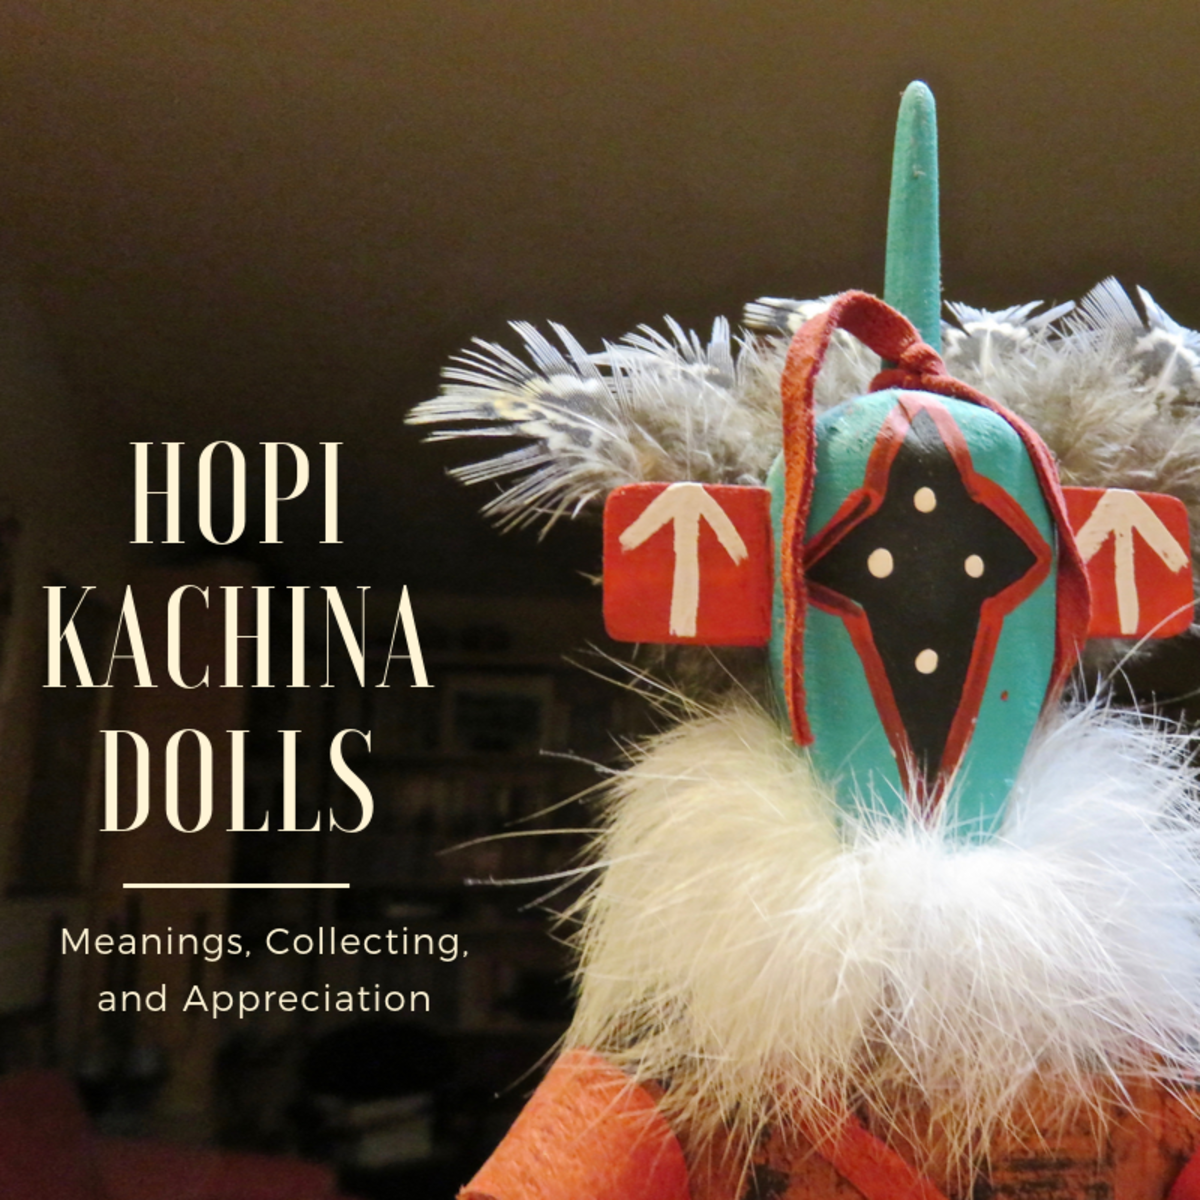 This article will break down some of the history and meanings behind the amazing Kachina dolls from the Hopi tribe.